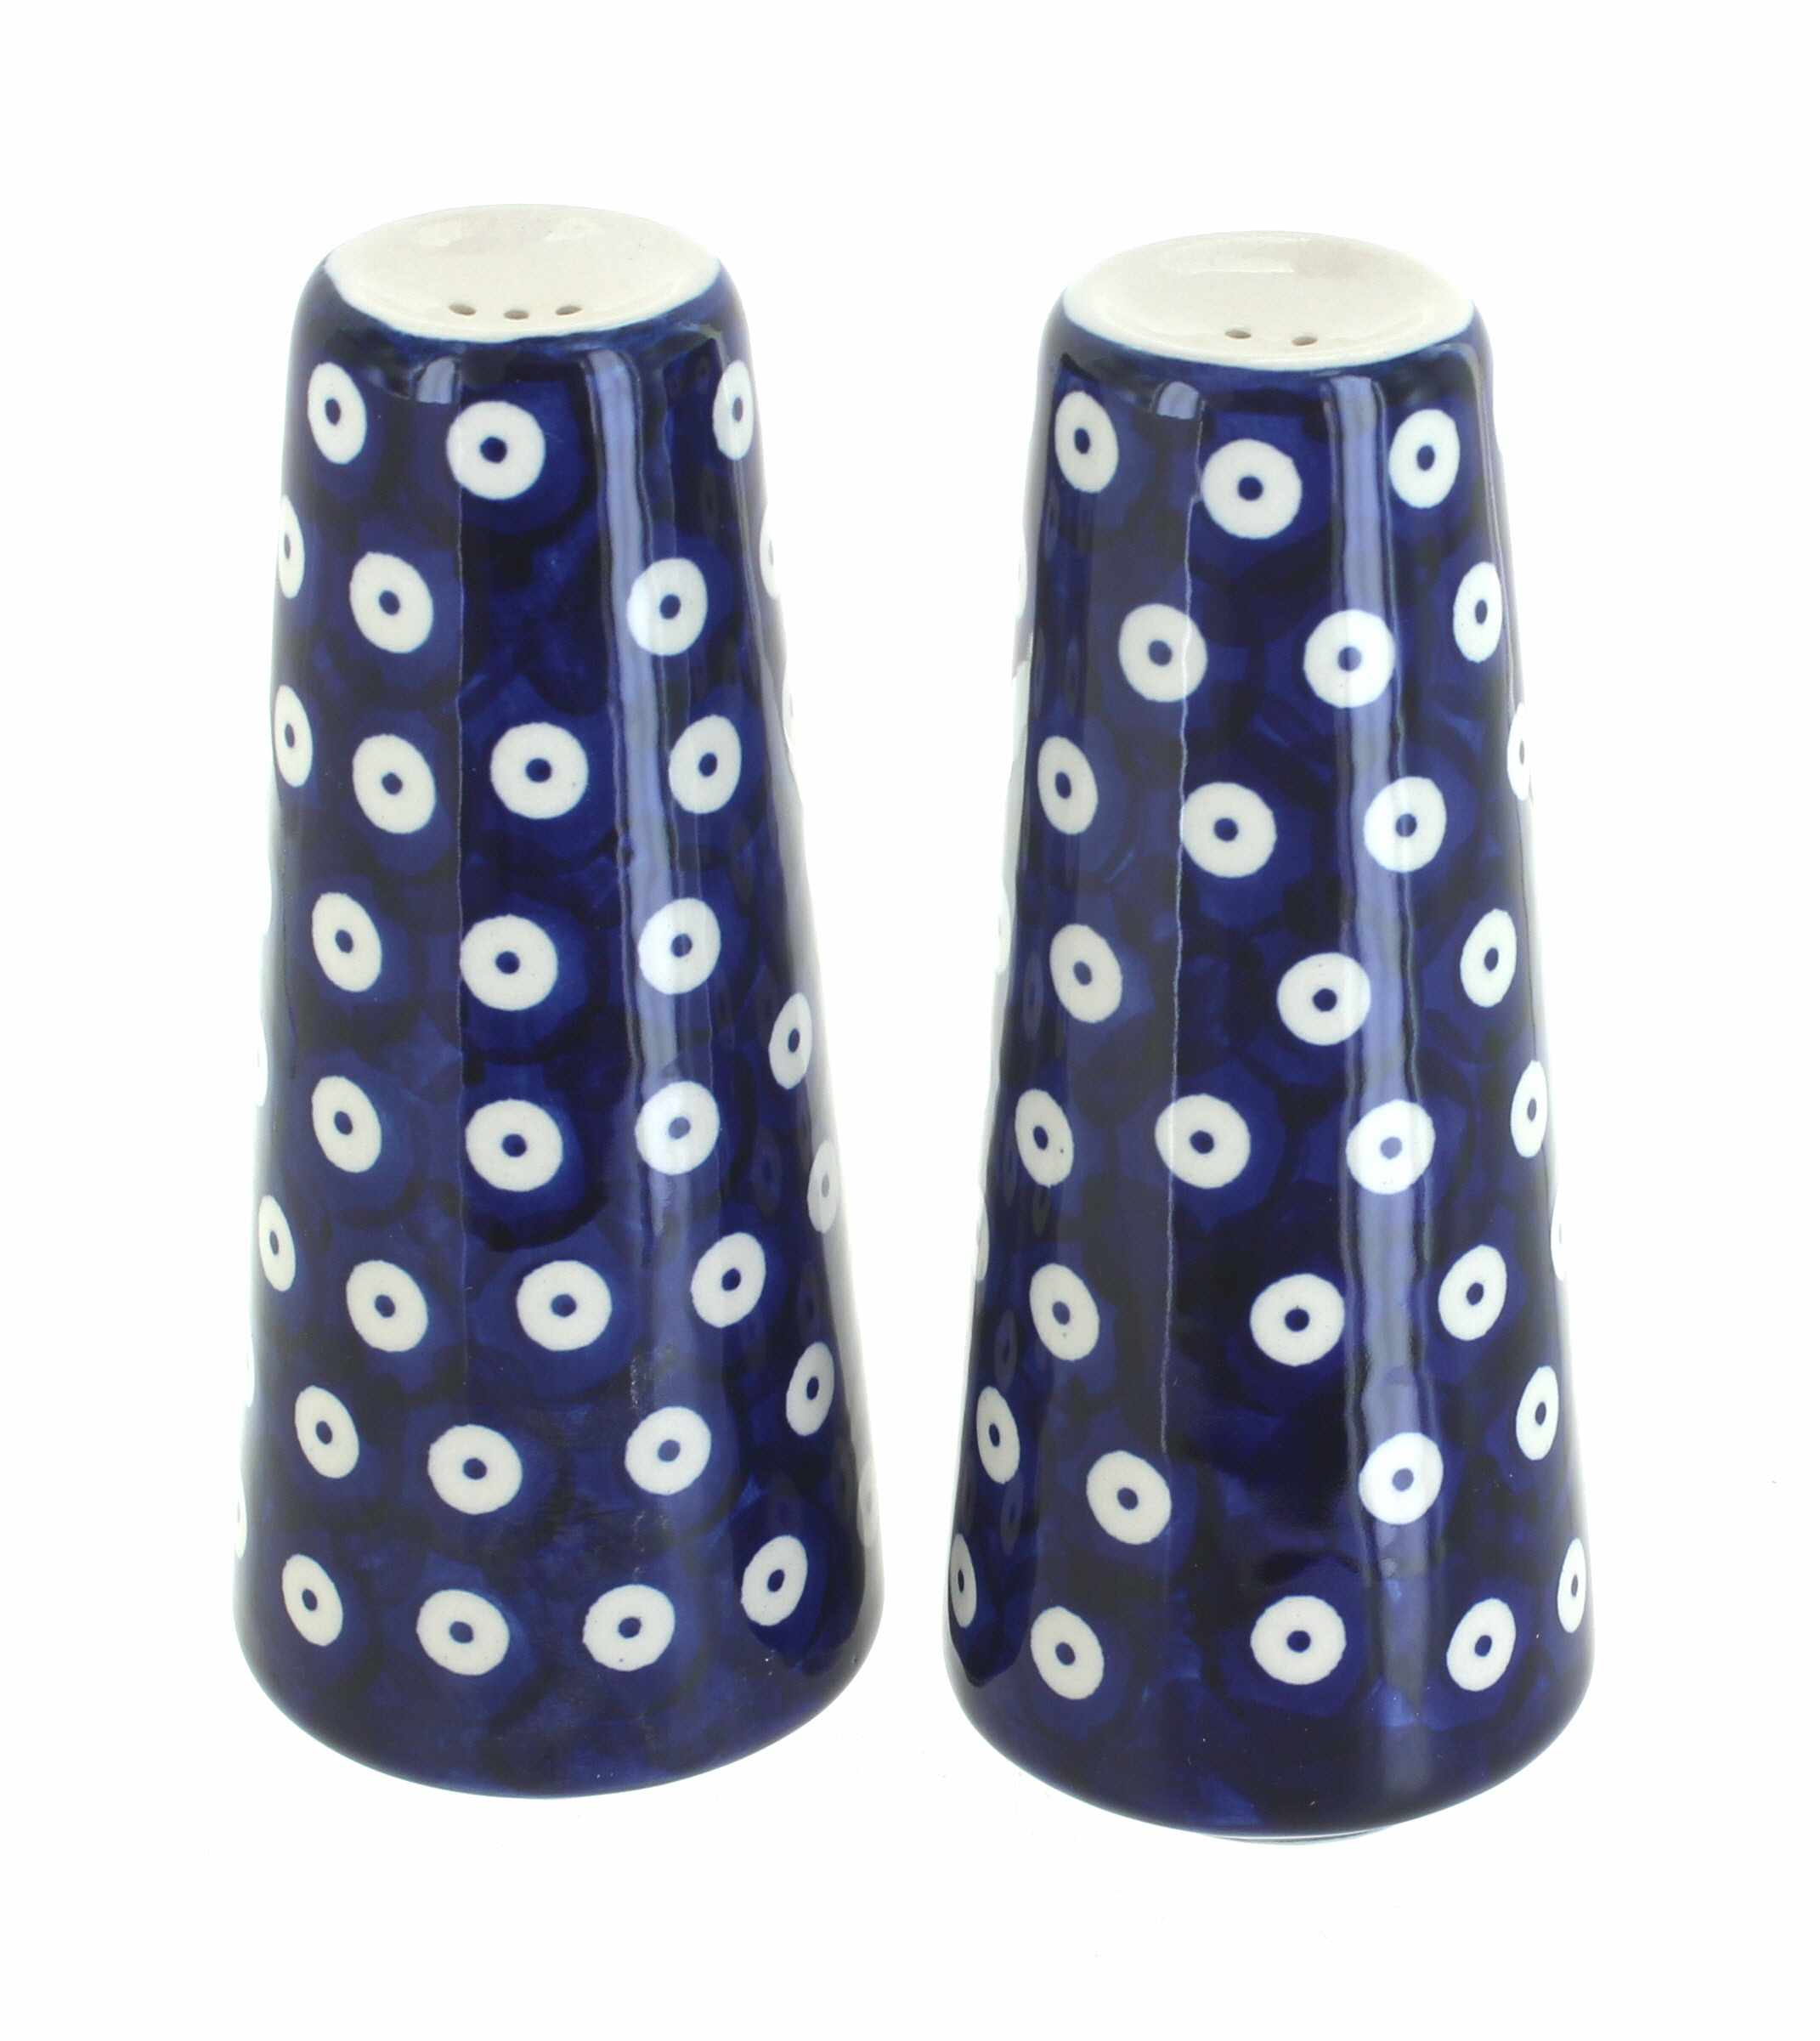 Blue and white shakers